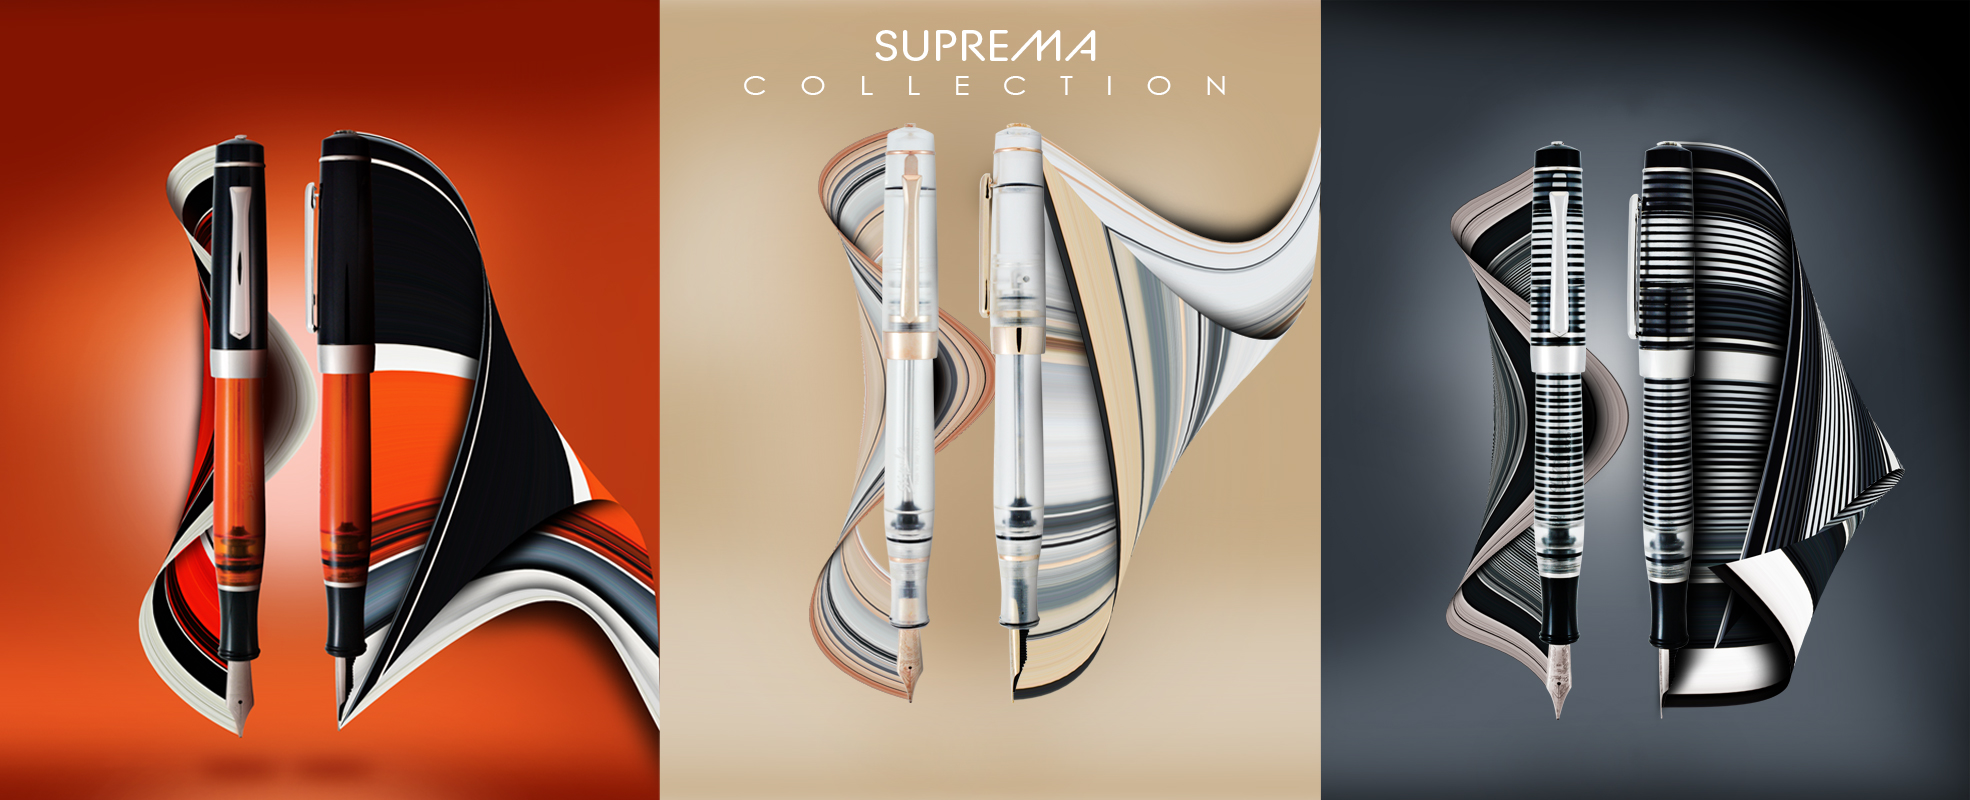 suprema-collection-creative-banner-revised.jpg